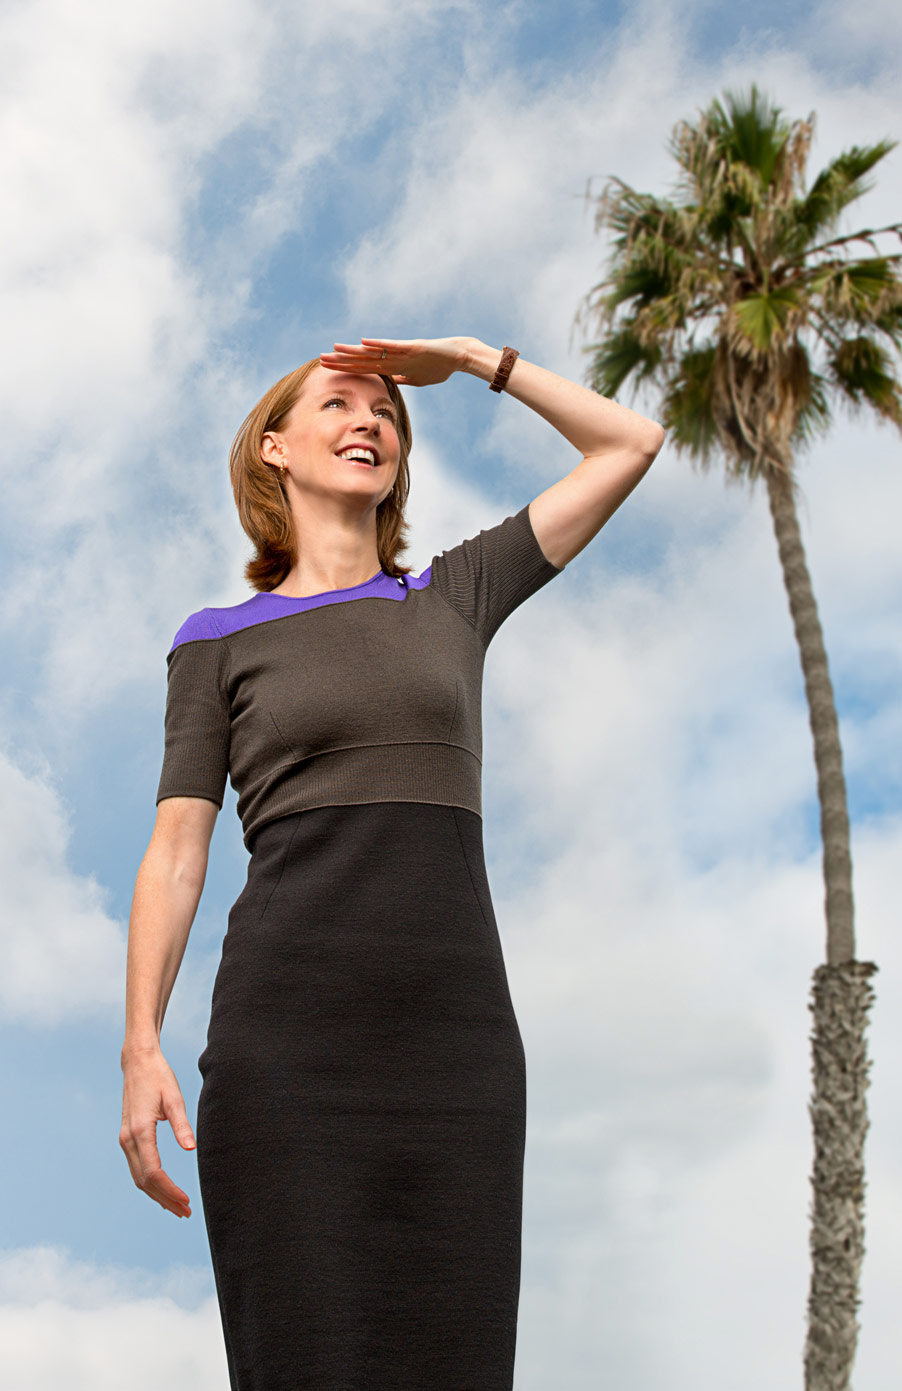 ​American author Gretchen Rubin photographed for the cover of UCSD Extension magazine